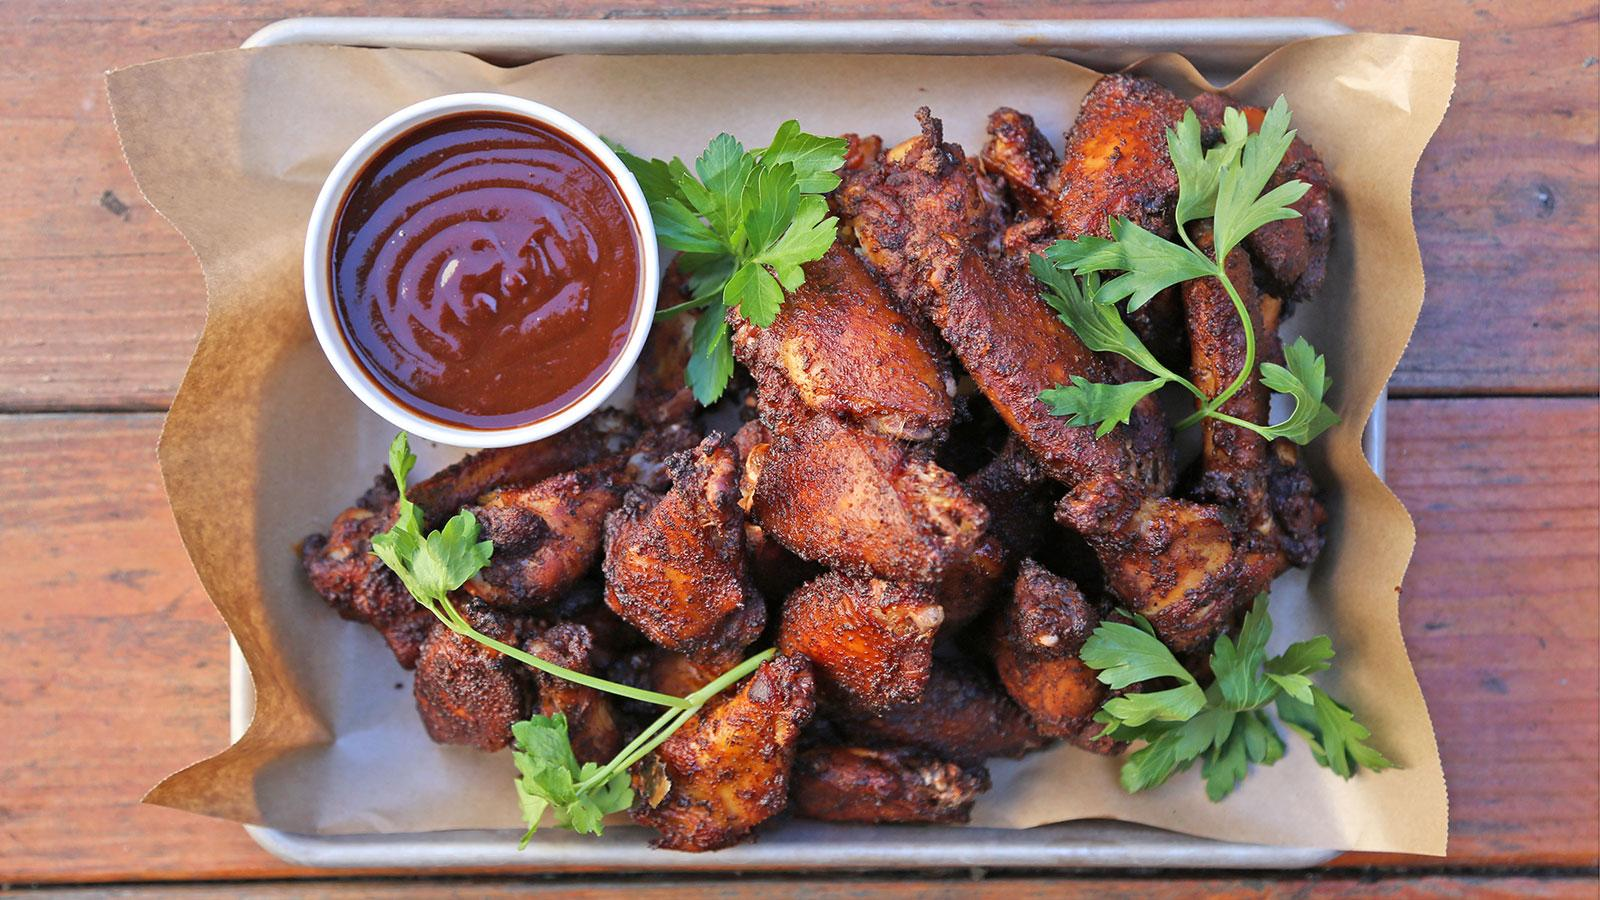 Super Bowl Recipes Barbecue Wings And Fried Clams Plus